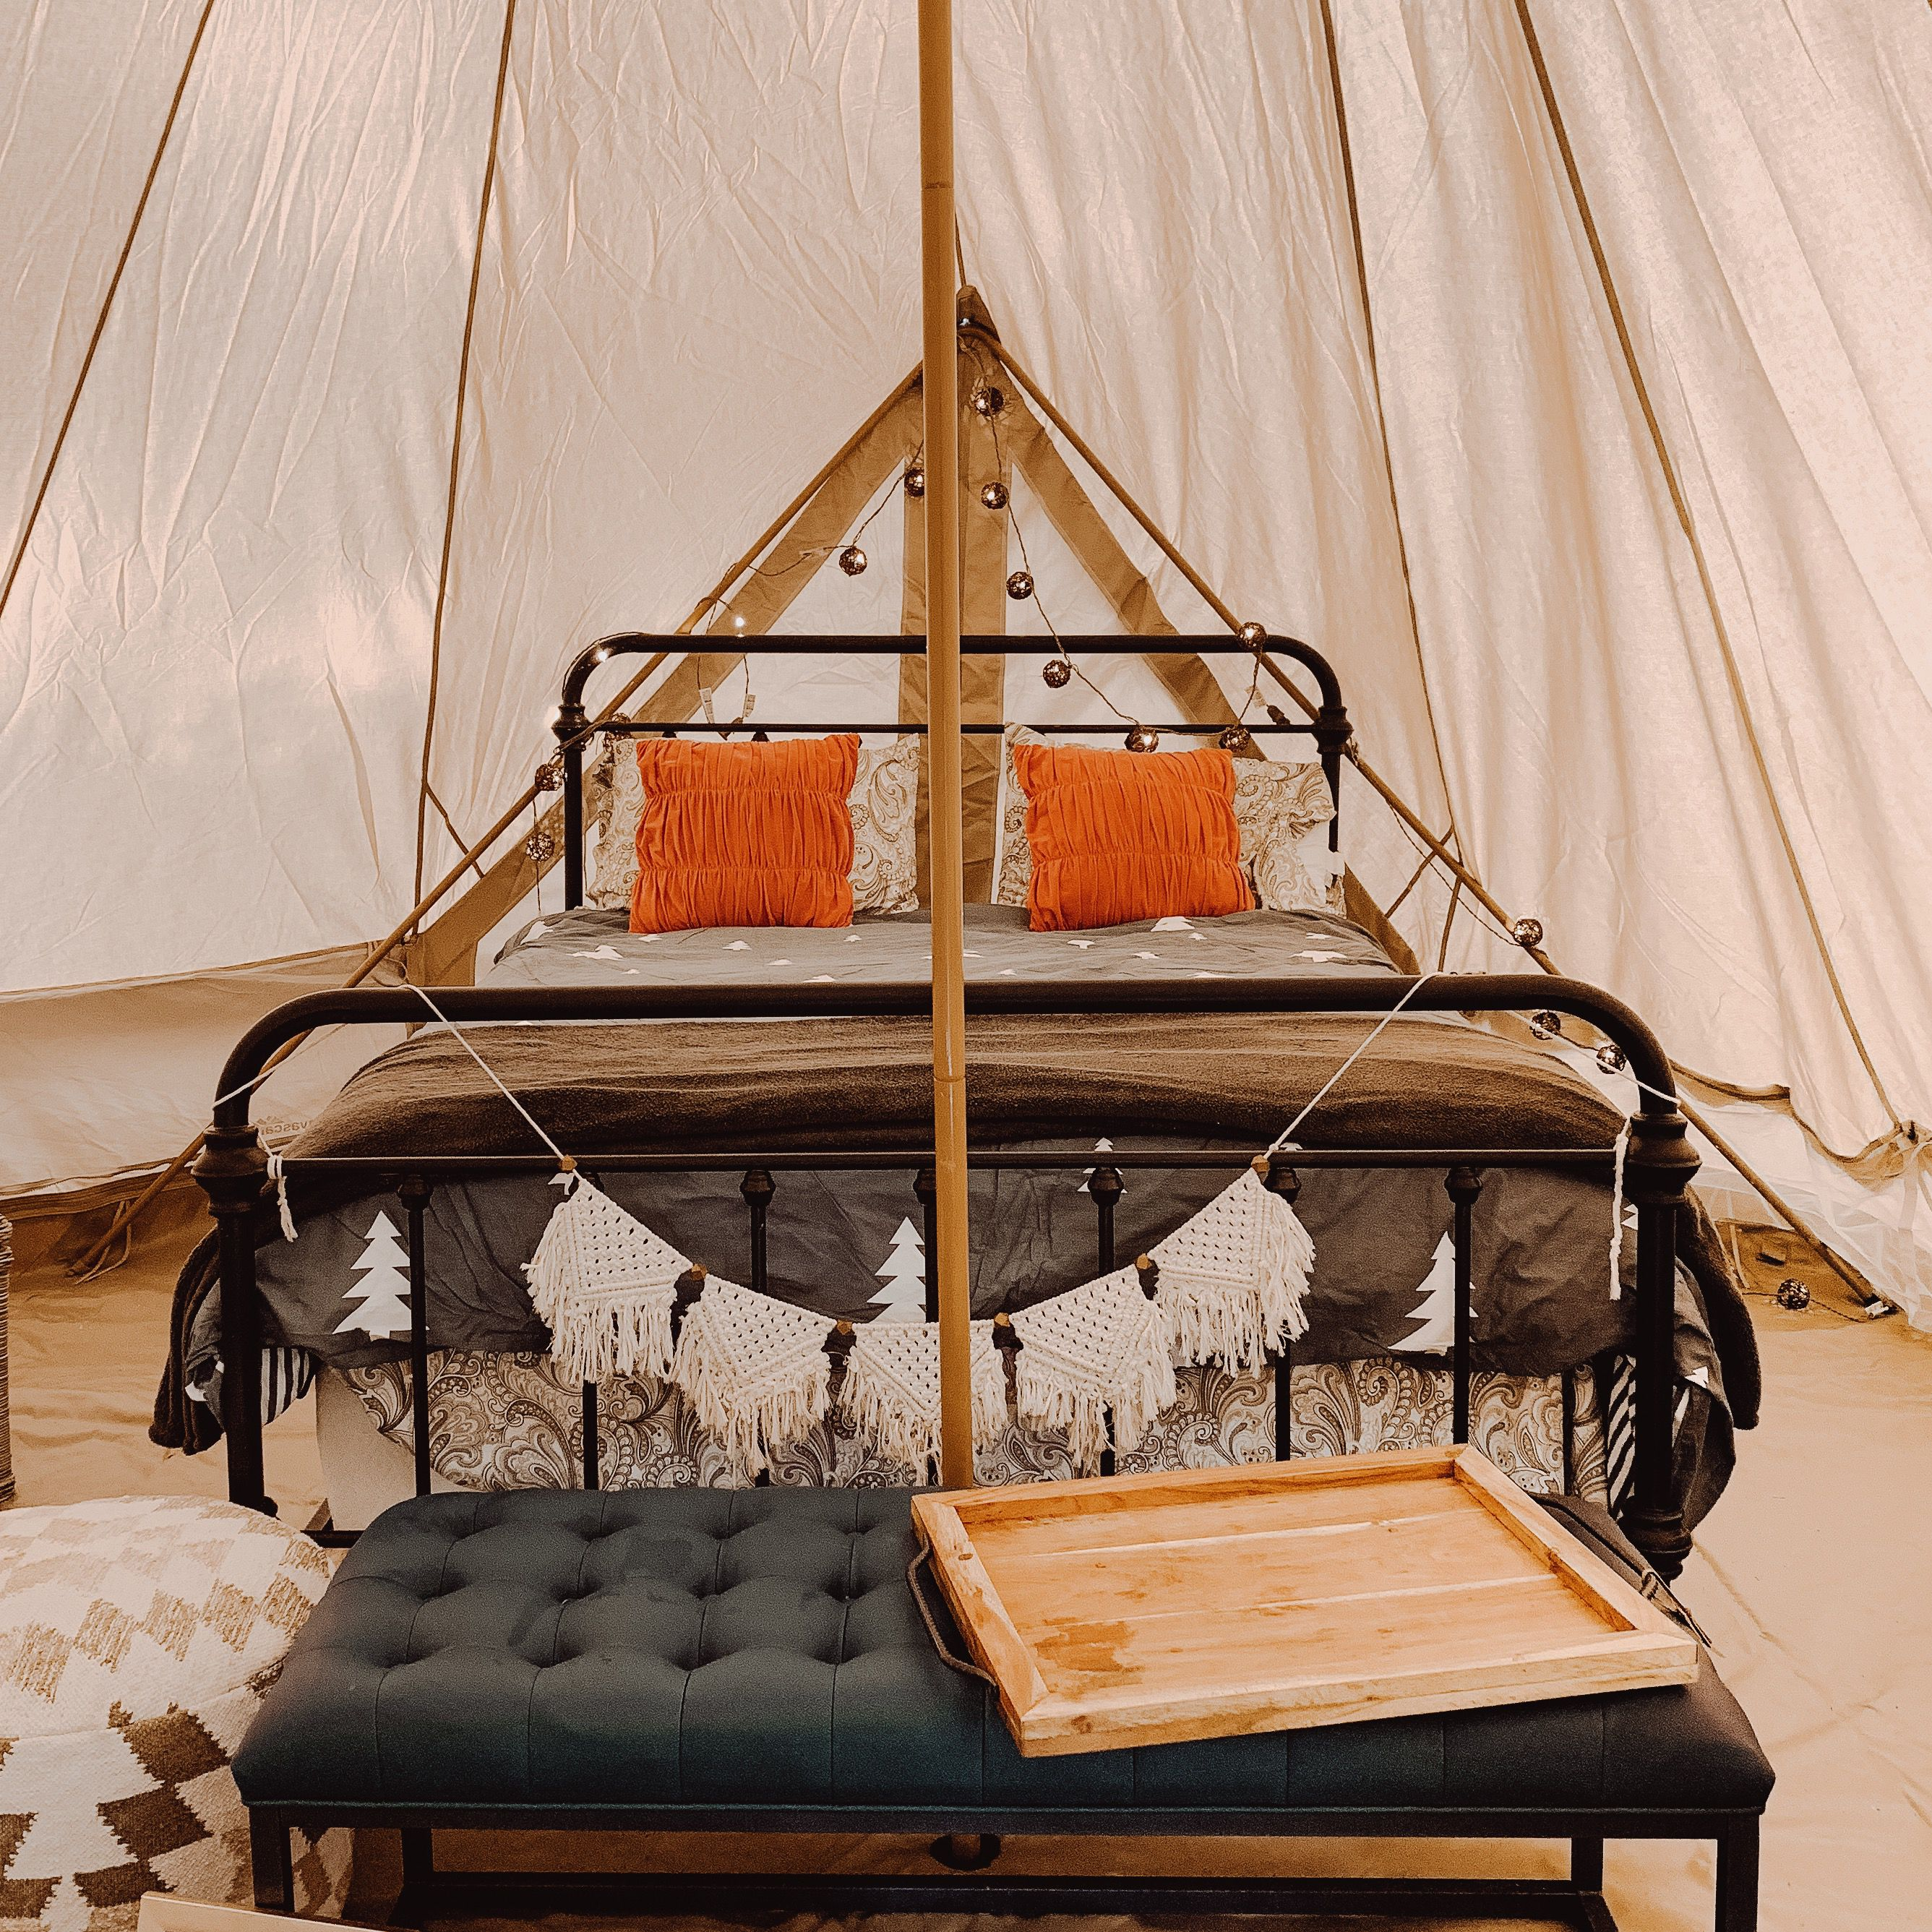 A Look Inside One Of The Deluxe Bell Tents Here At